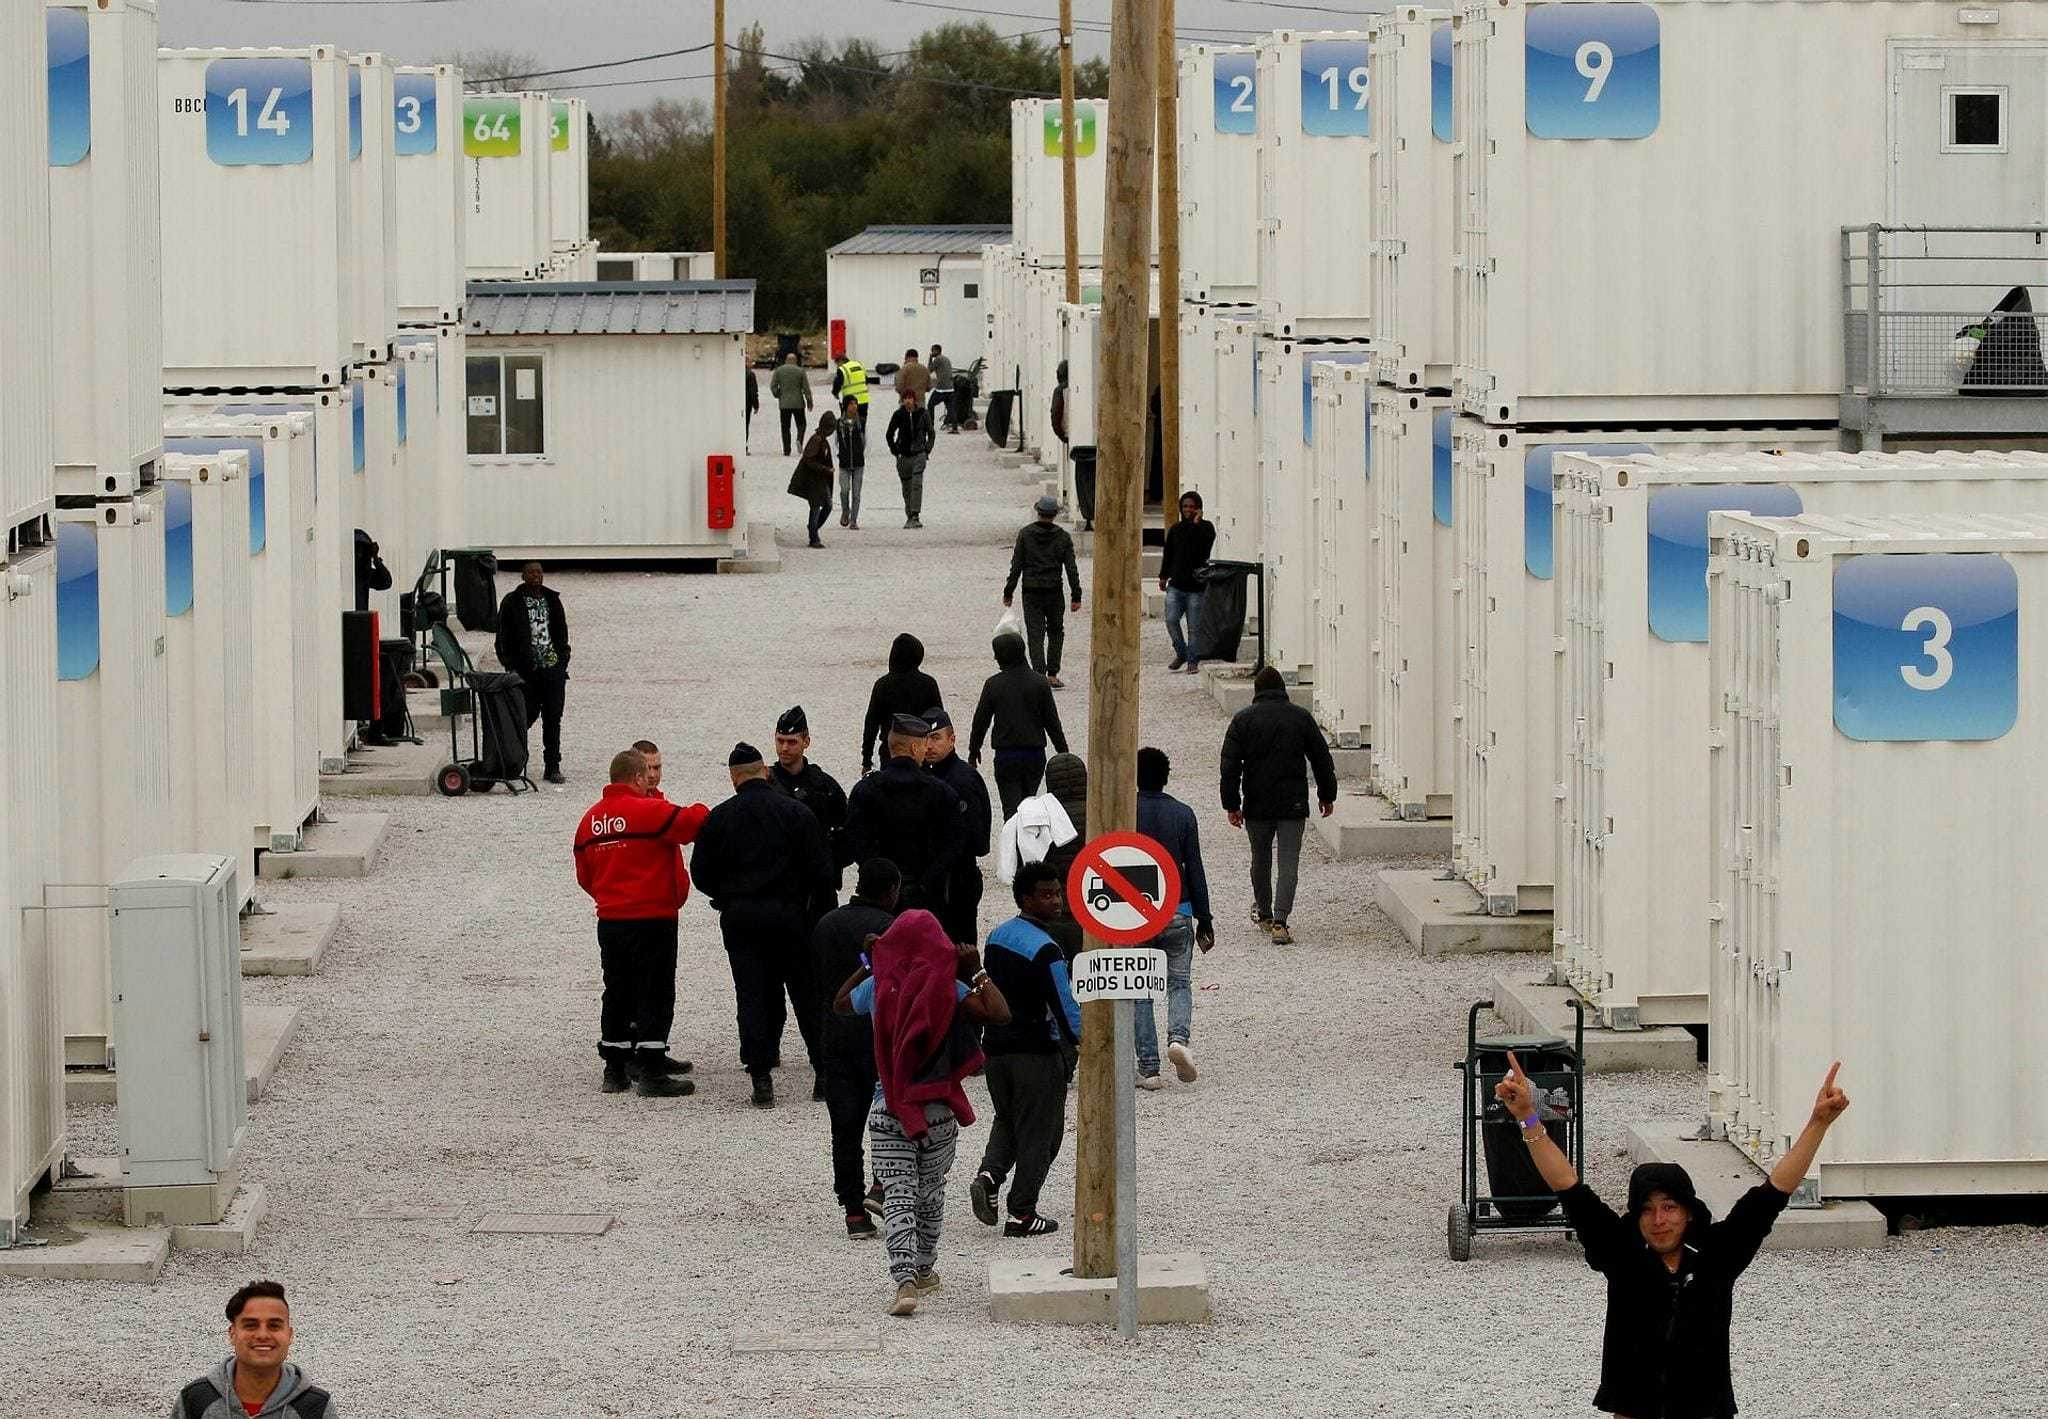 Around 1500 migrant minors in Calais inside the containers before leaving for one the reception centers in France, Nov. 1.